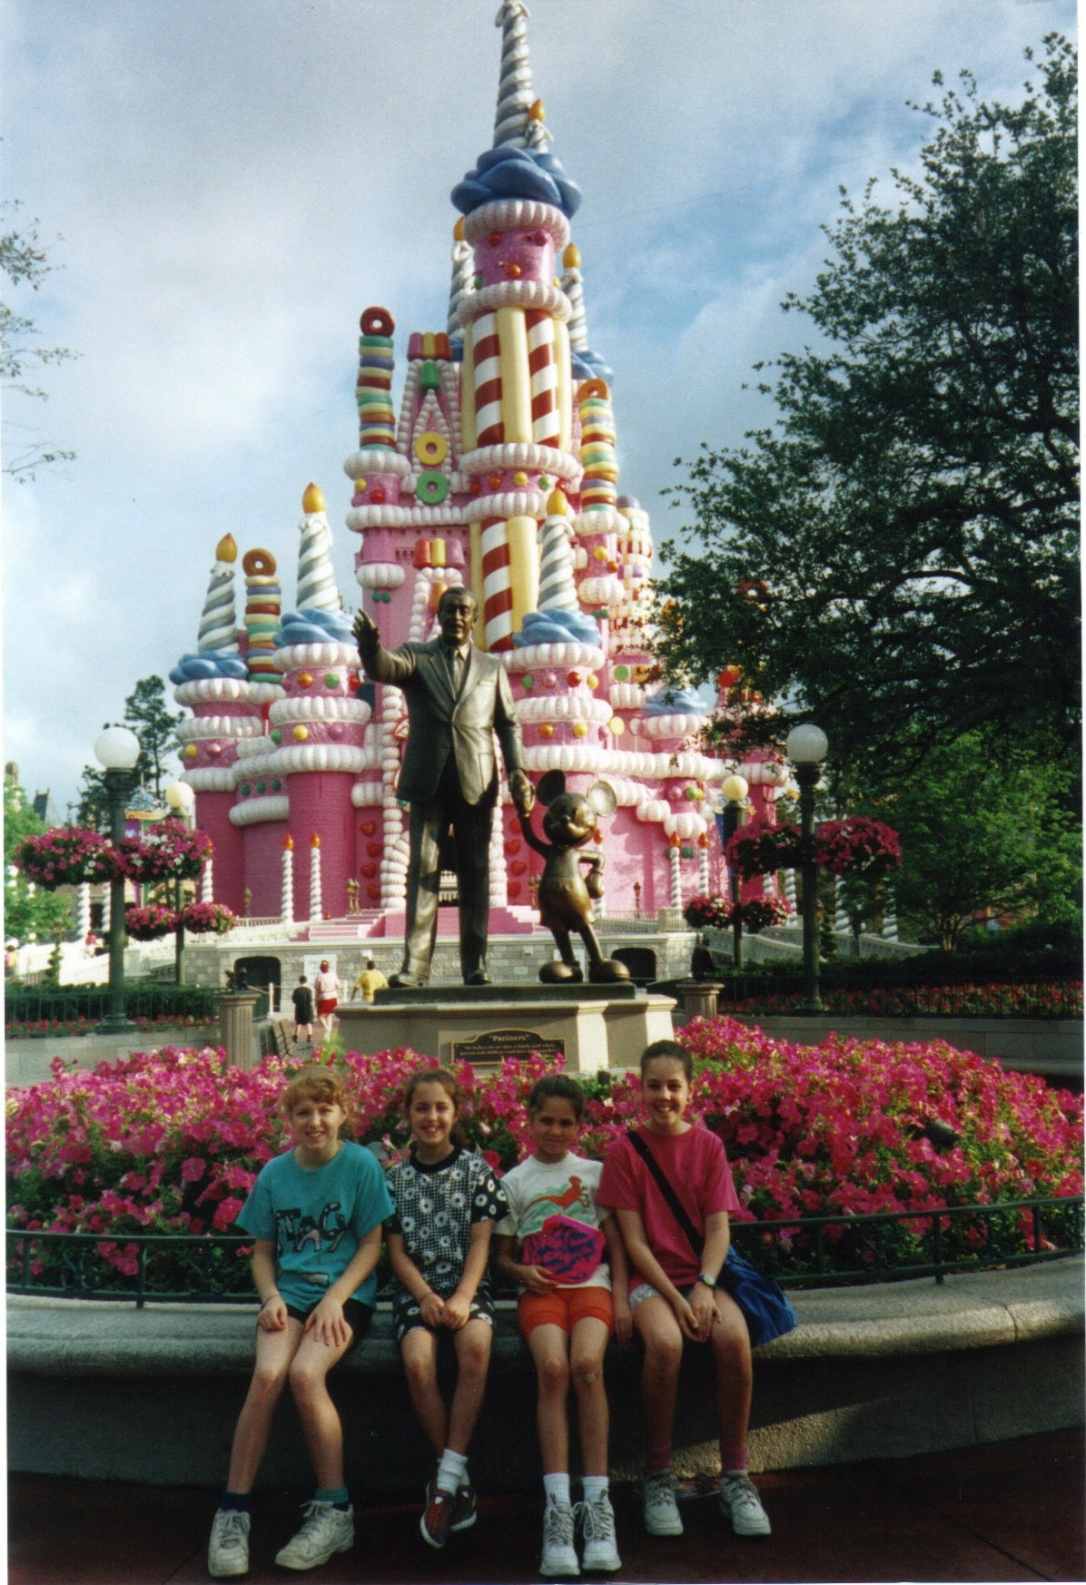 Disney March 31, 1997 Moore Goldberg Kids